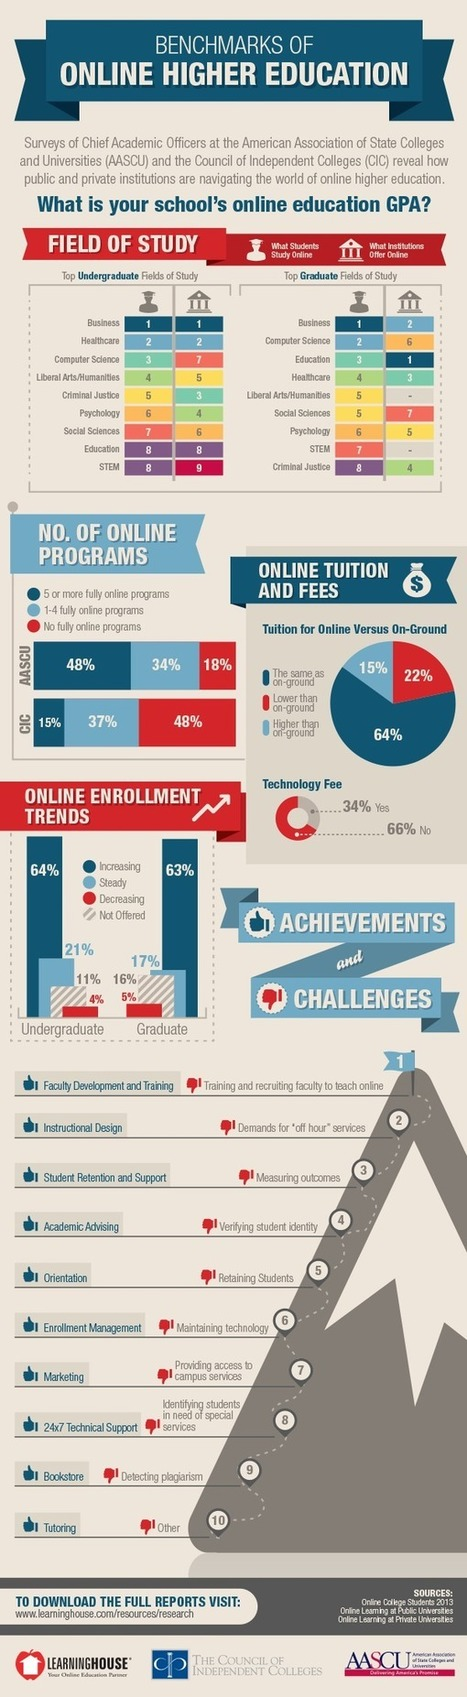 Benchmarks of Online Higher Education [INFOGRAPHIC] - The Learning House | Aprendiendo a Distancia | Scoop.it